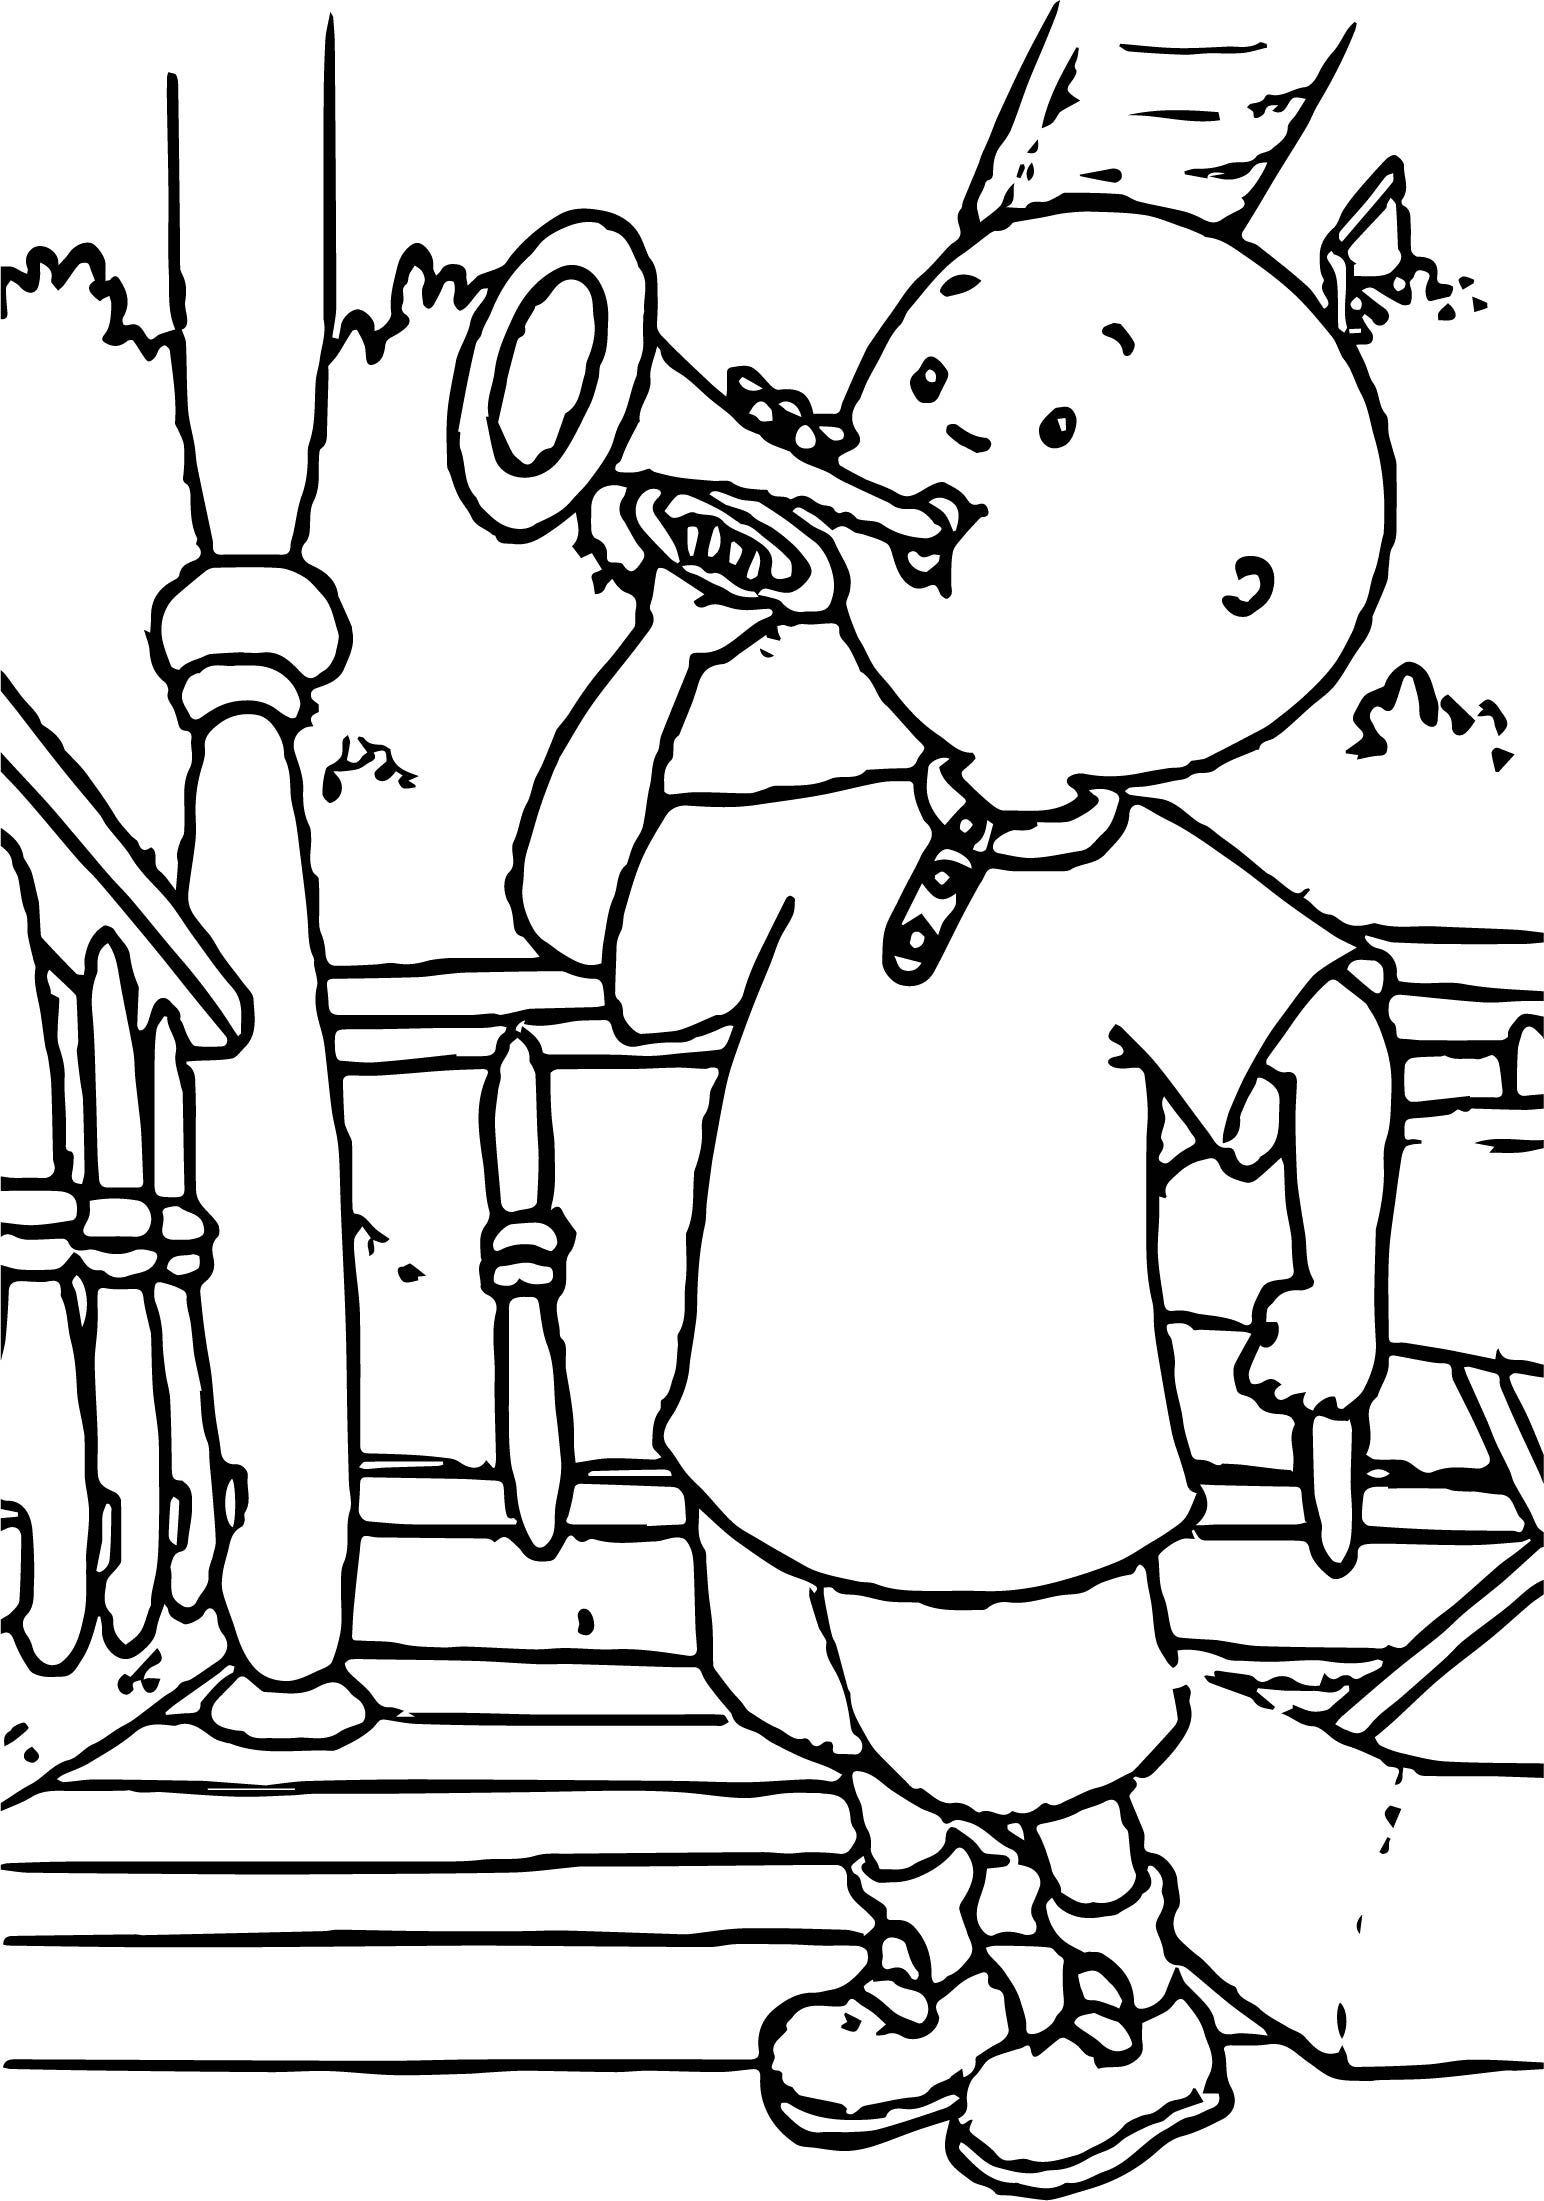 Sing caillou caillou coloring page for Sing movie coloring pages